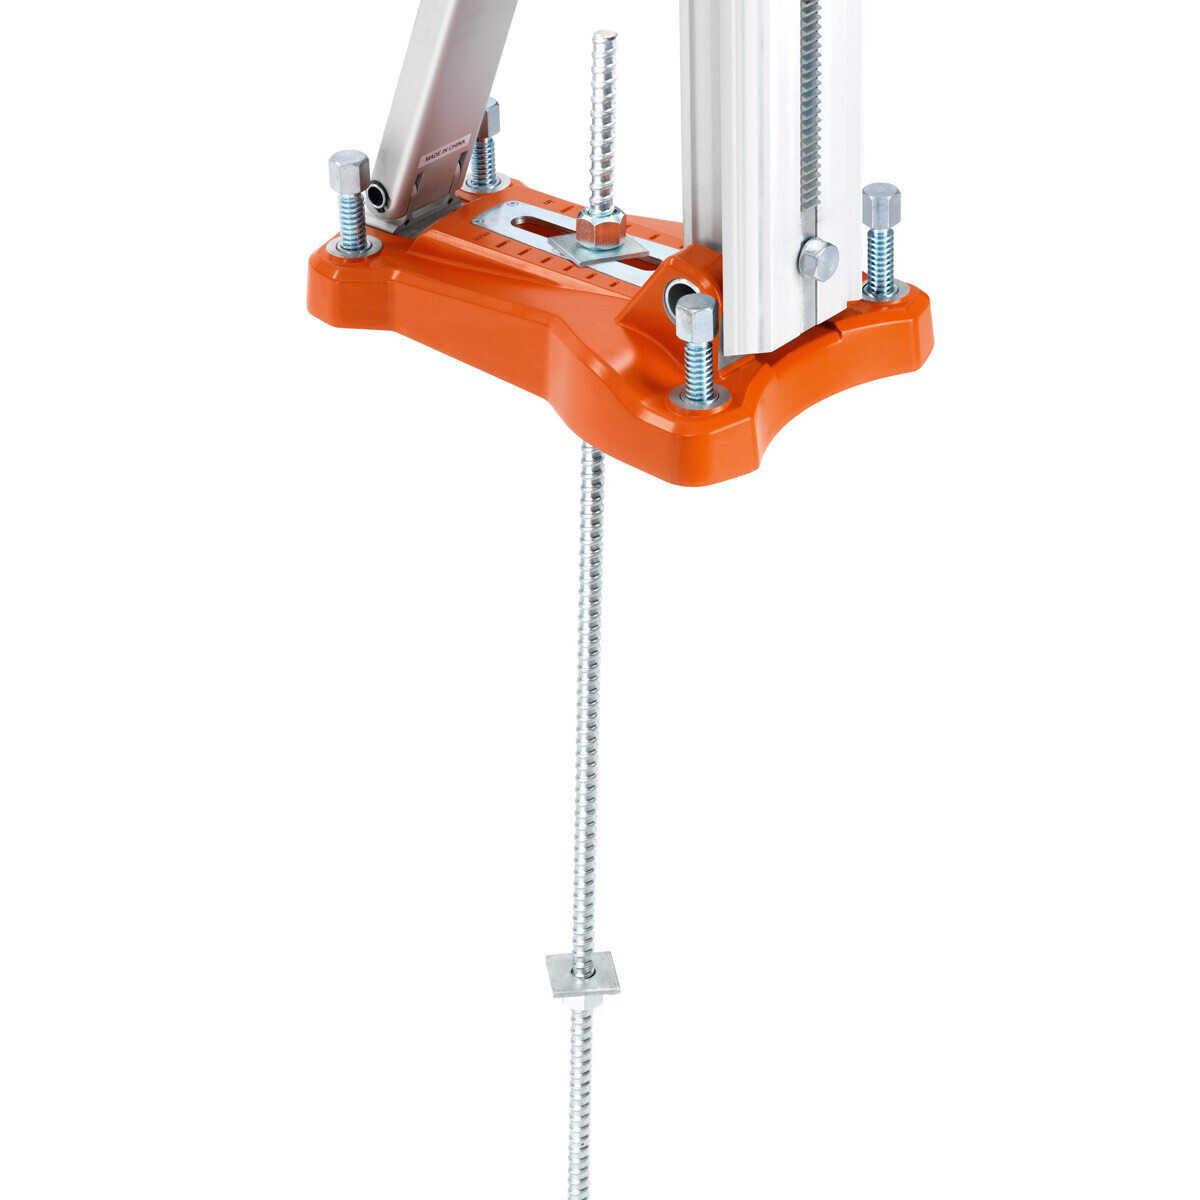 Husqvarna DMS 280 anchor base